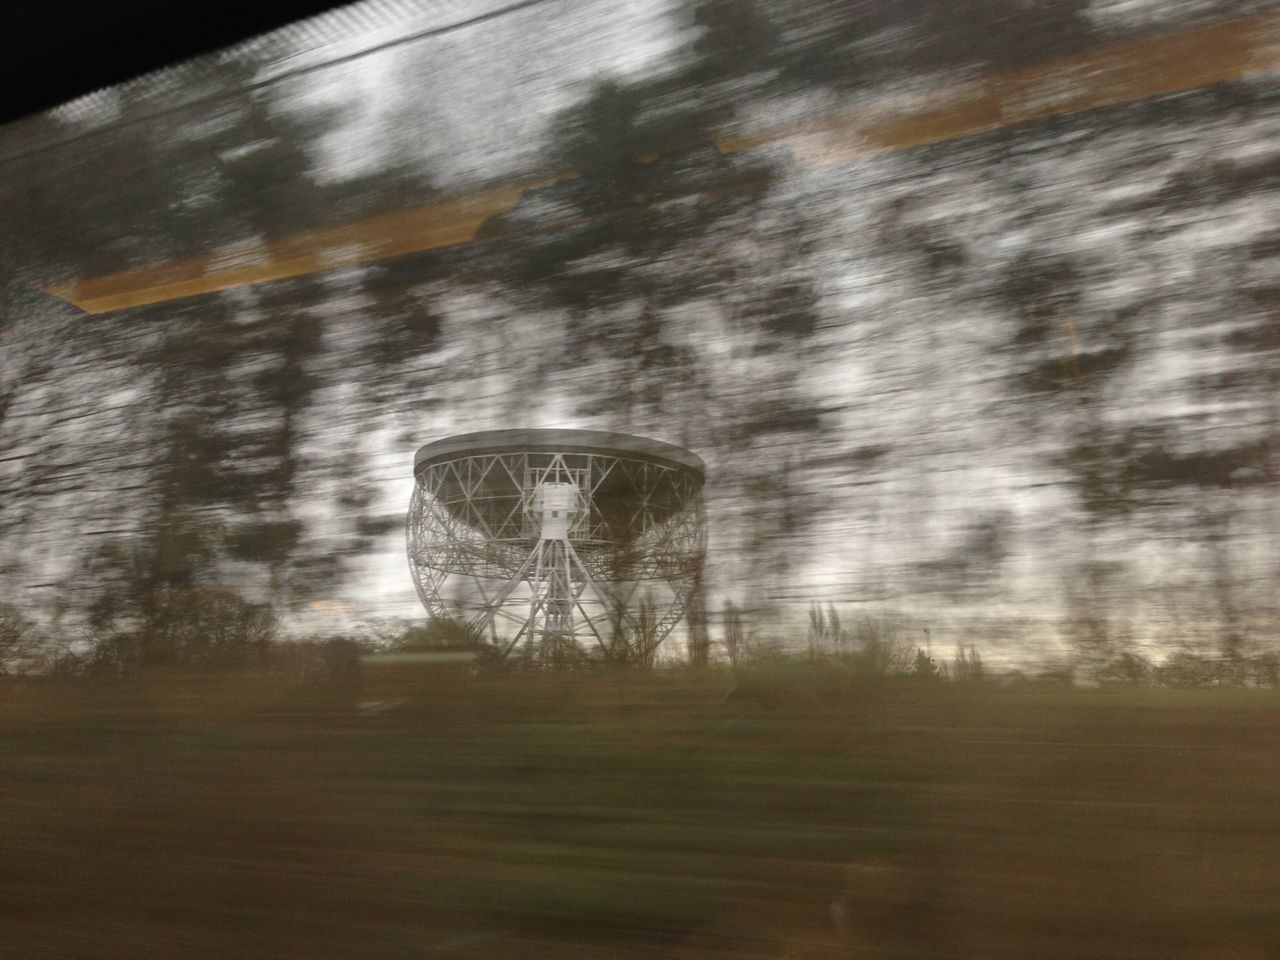 Jodrell bank satelight Blurred Motion Motion No People Nature Outdoors Day Satelight